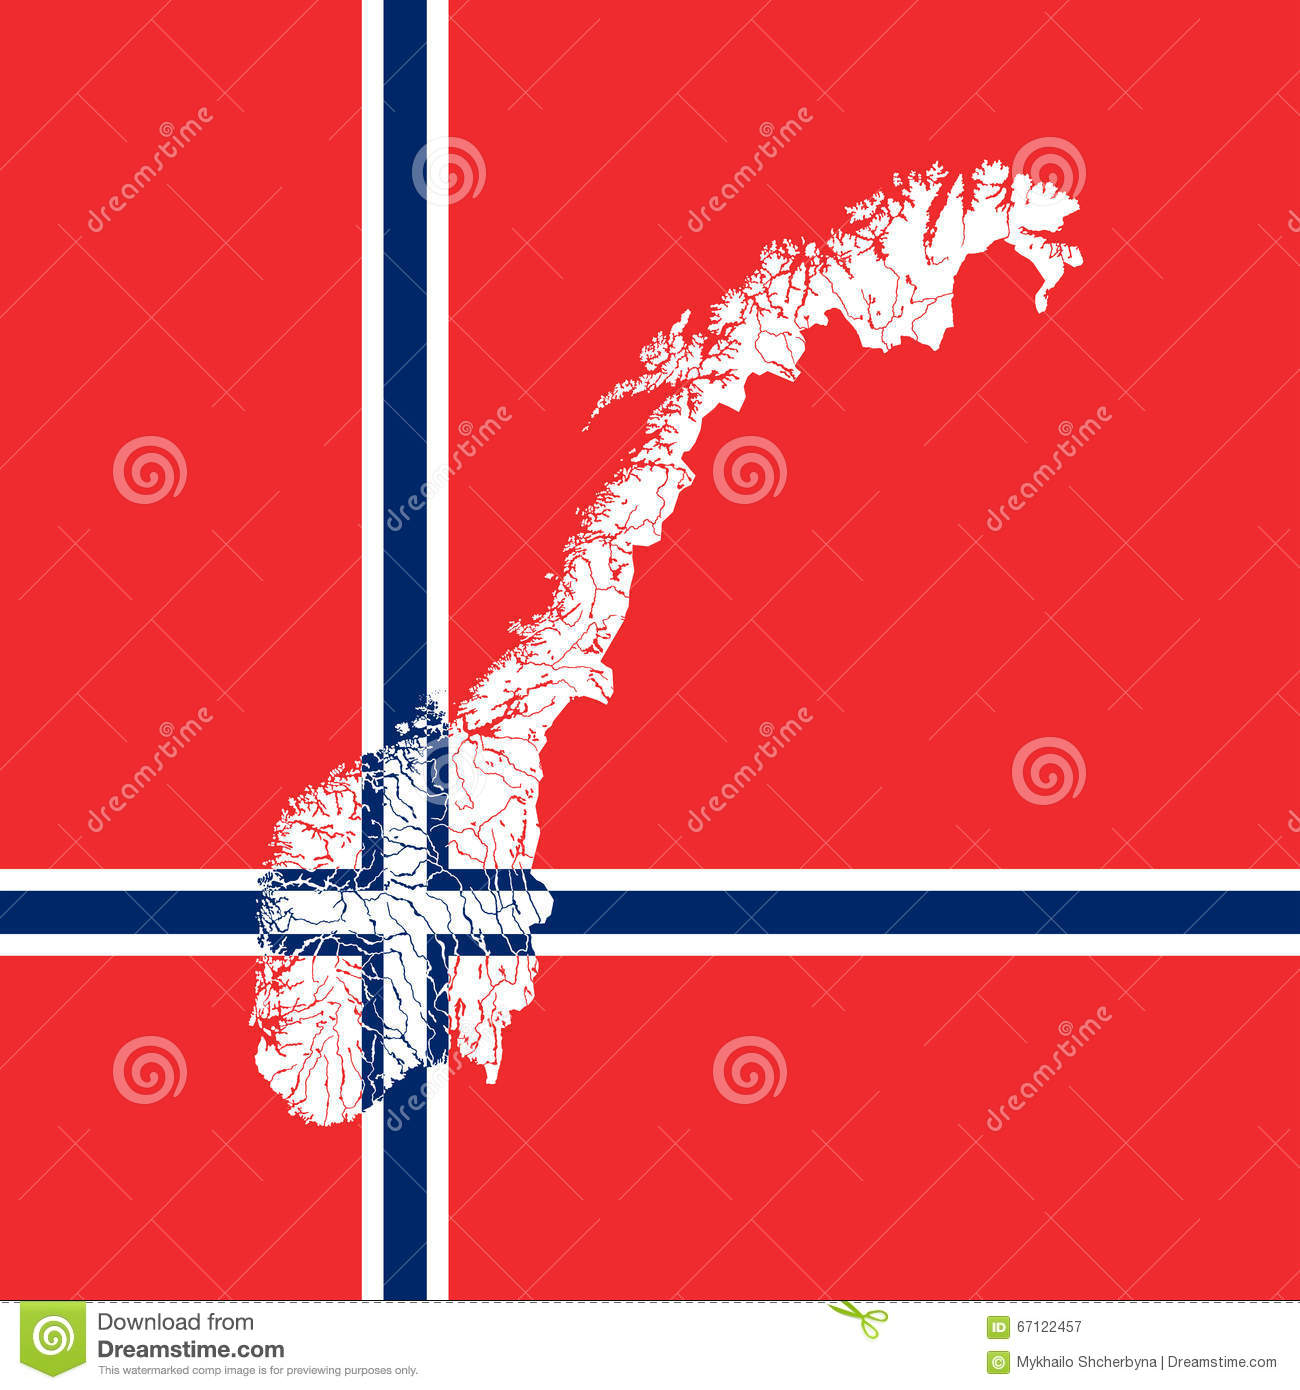 map of norway with lakes and rivers stock vector image 67122457